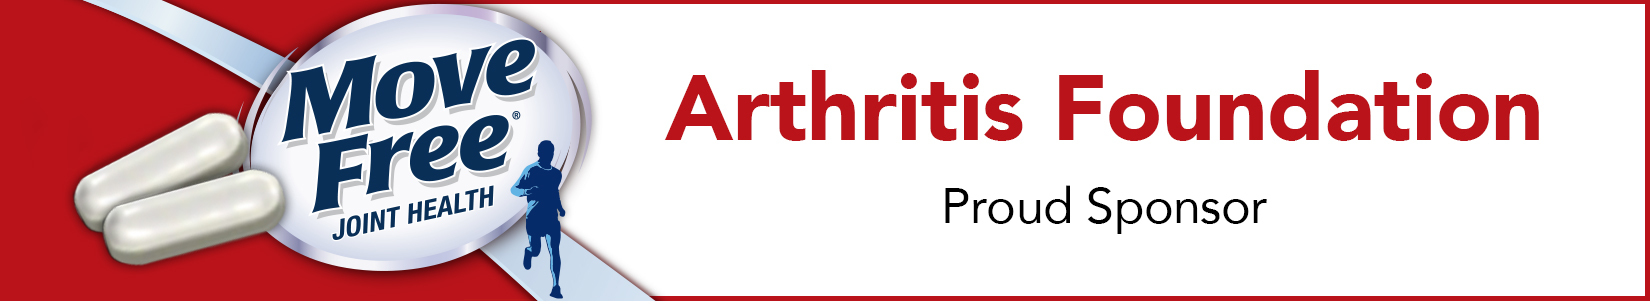 Reckitt Benckiser LLC is proud to support the Arthritis Foundation